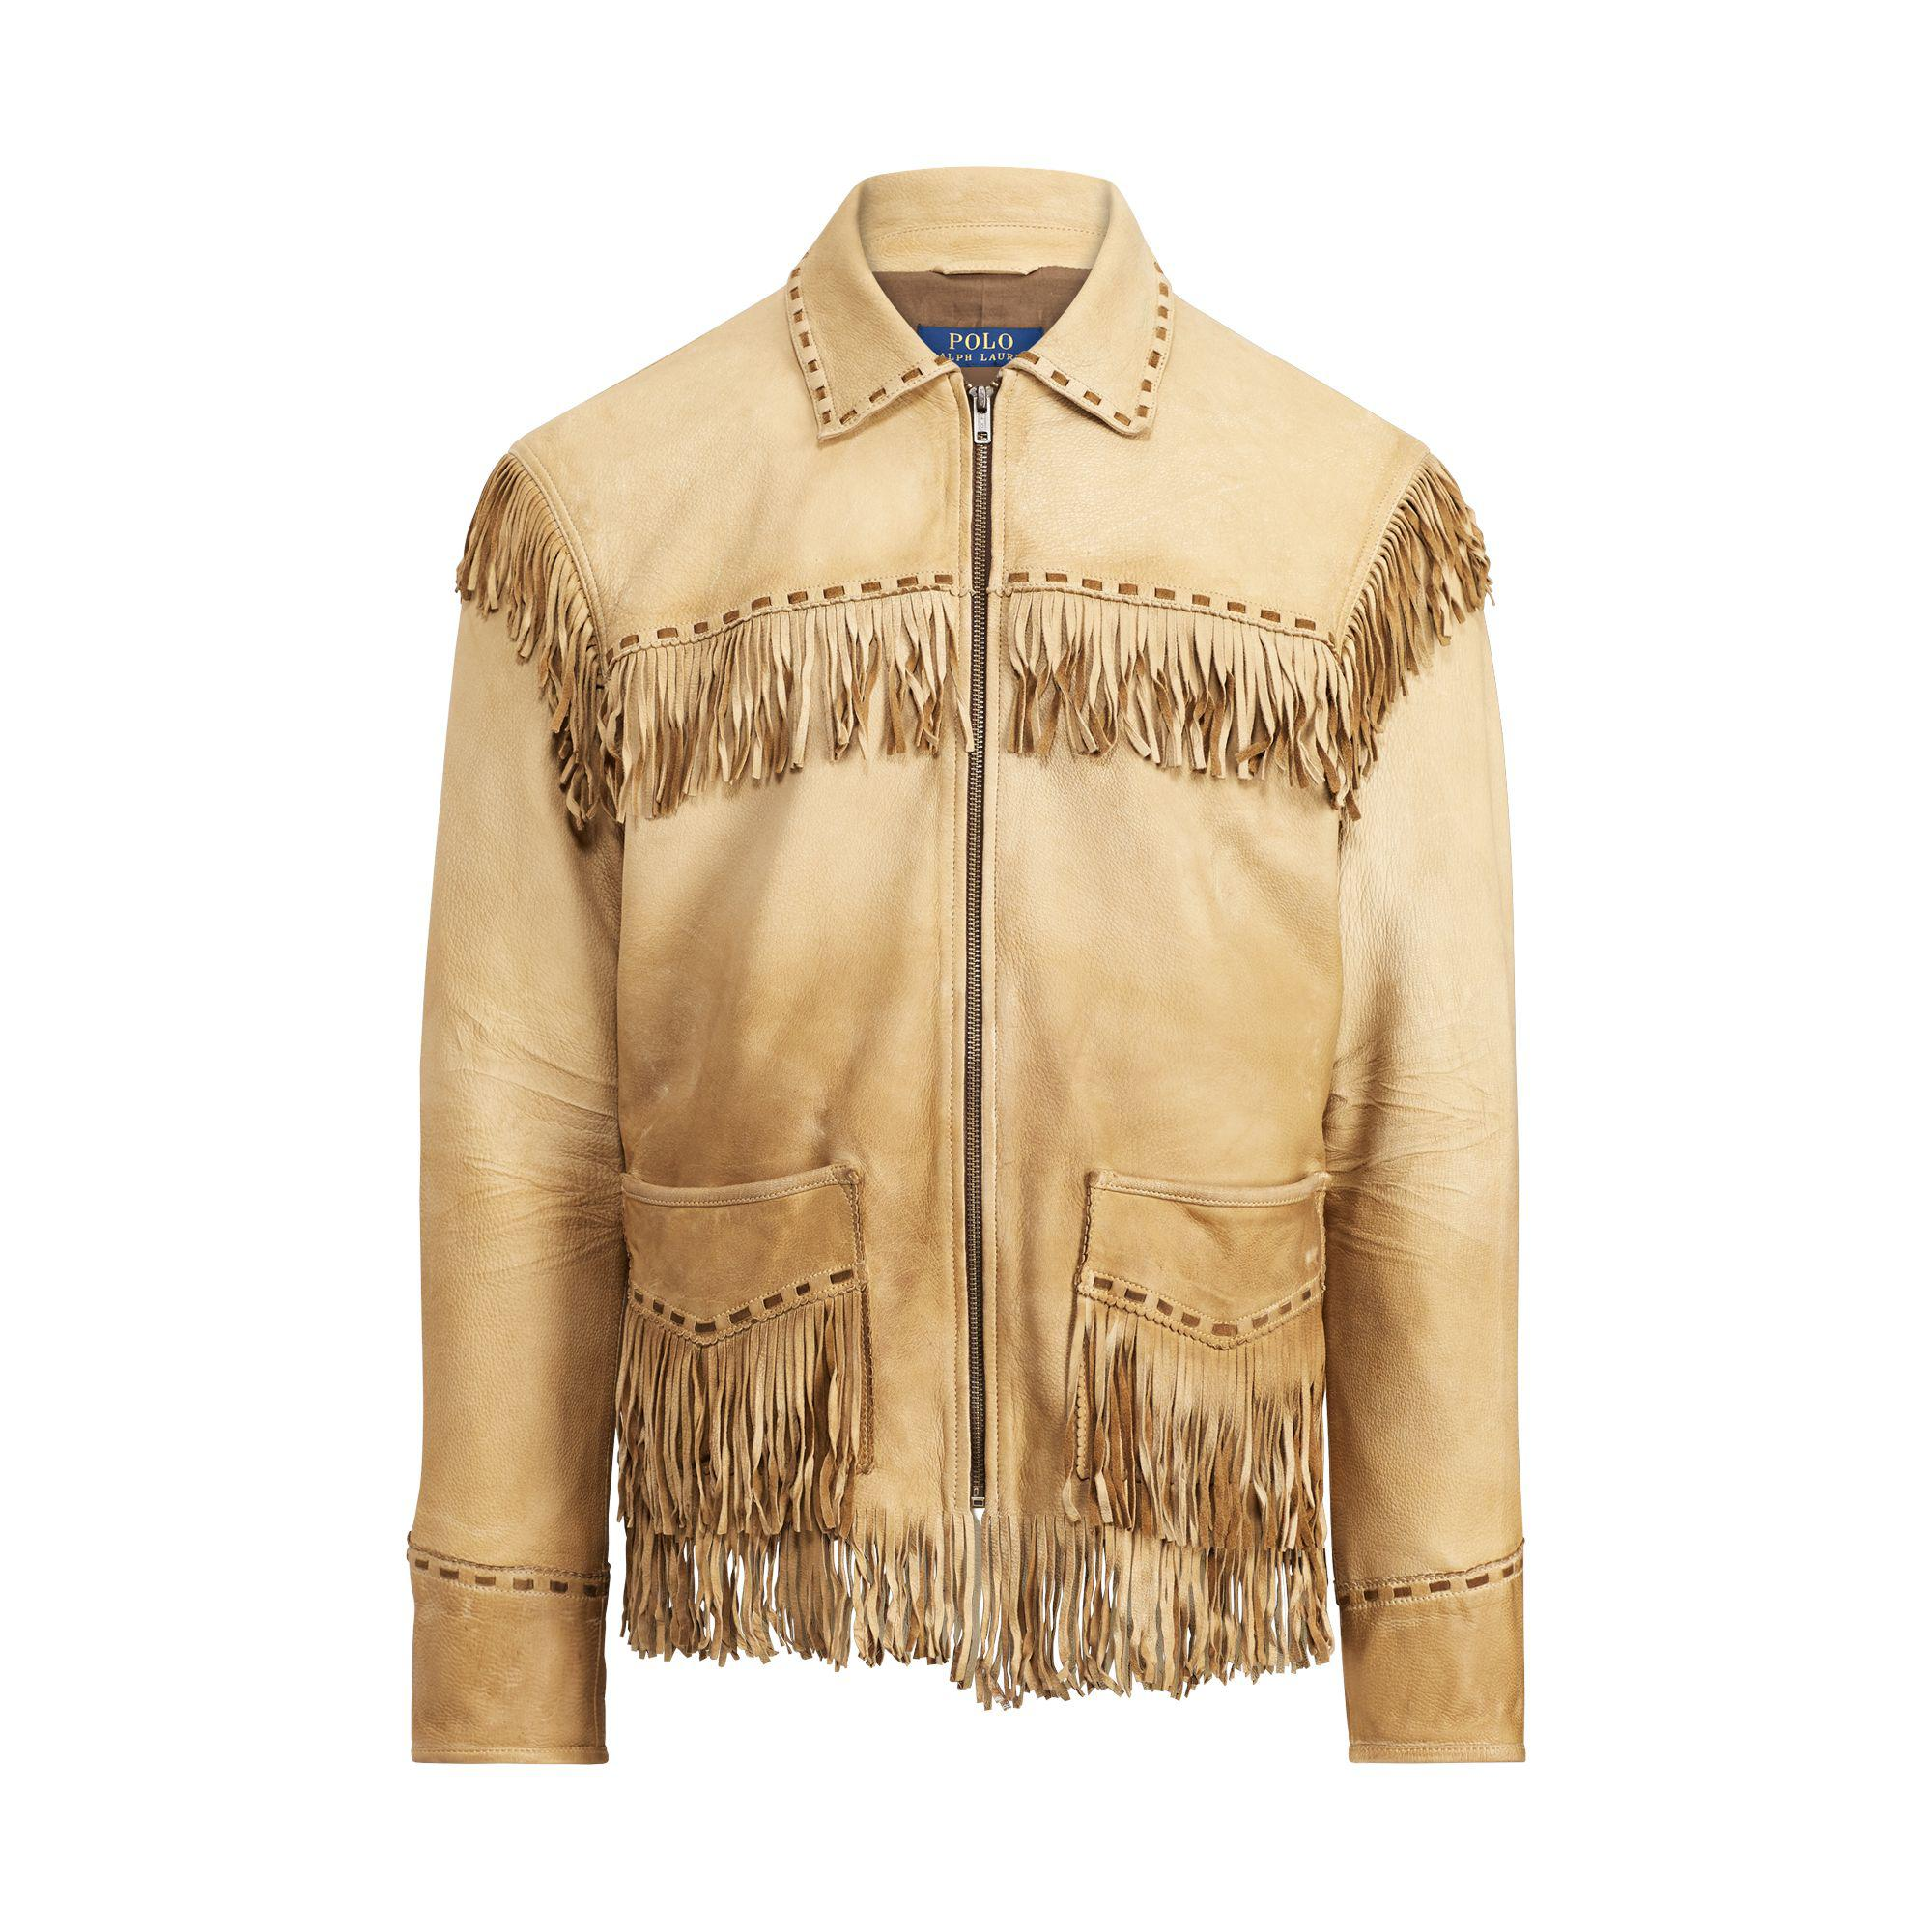 lyst polo ralph lauren fringe deerskin jacket for men. Black Bedroom Furniture Sets. Home Design Ideas